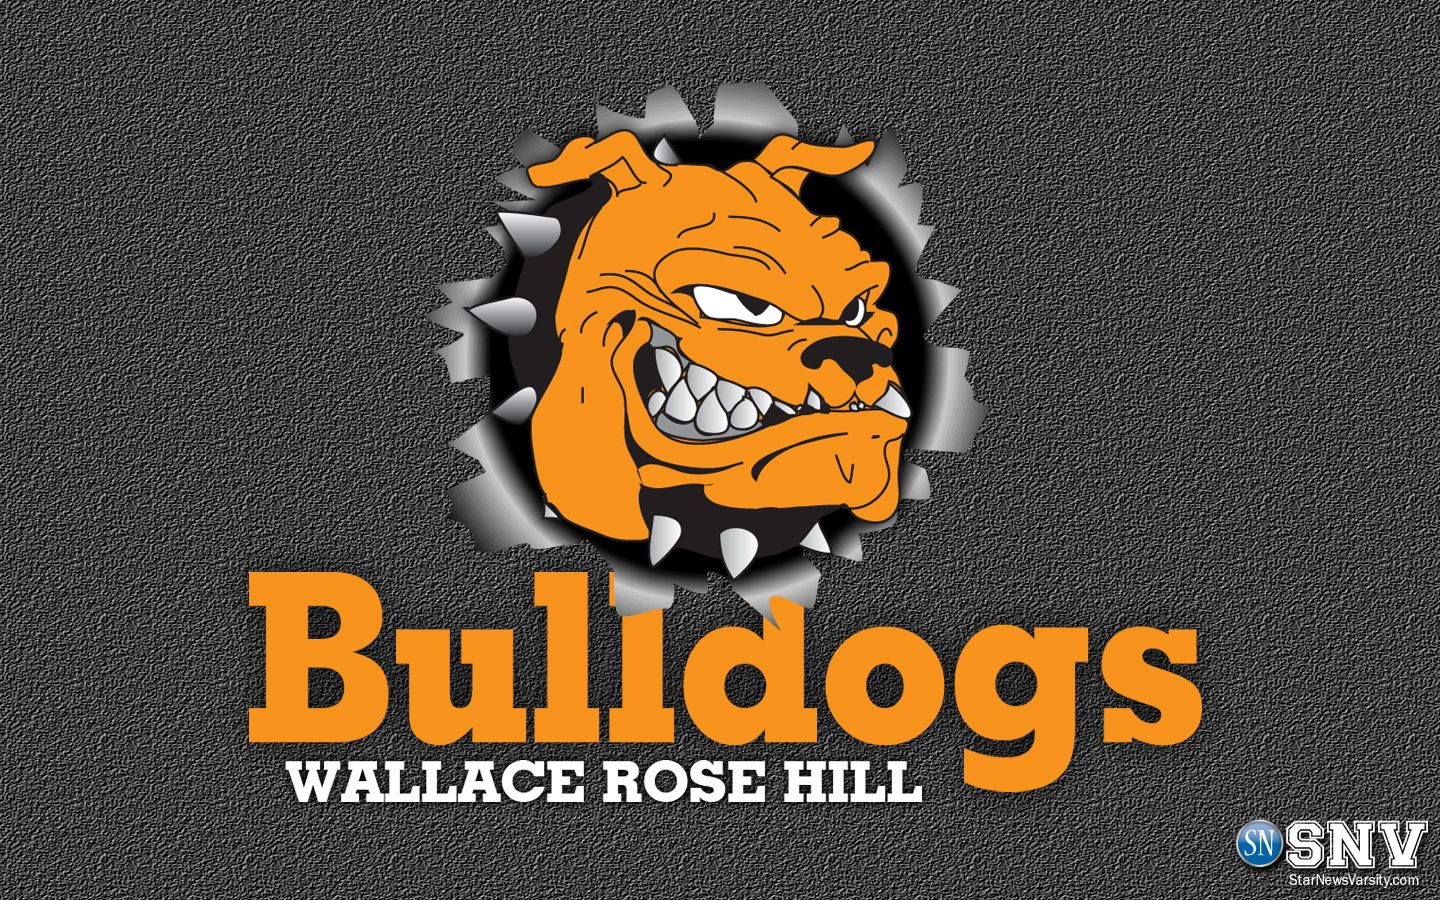 Bulldog fan forever,i may not be in high school anymore